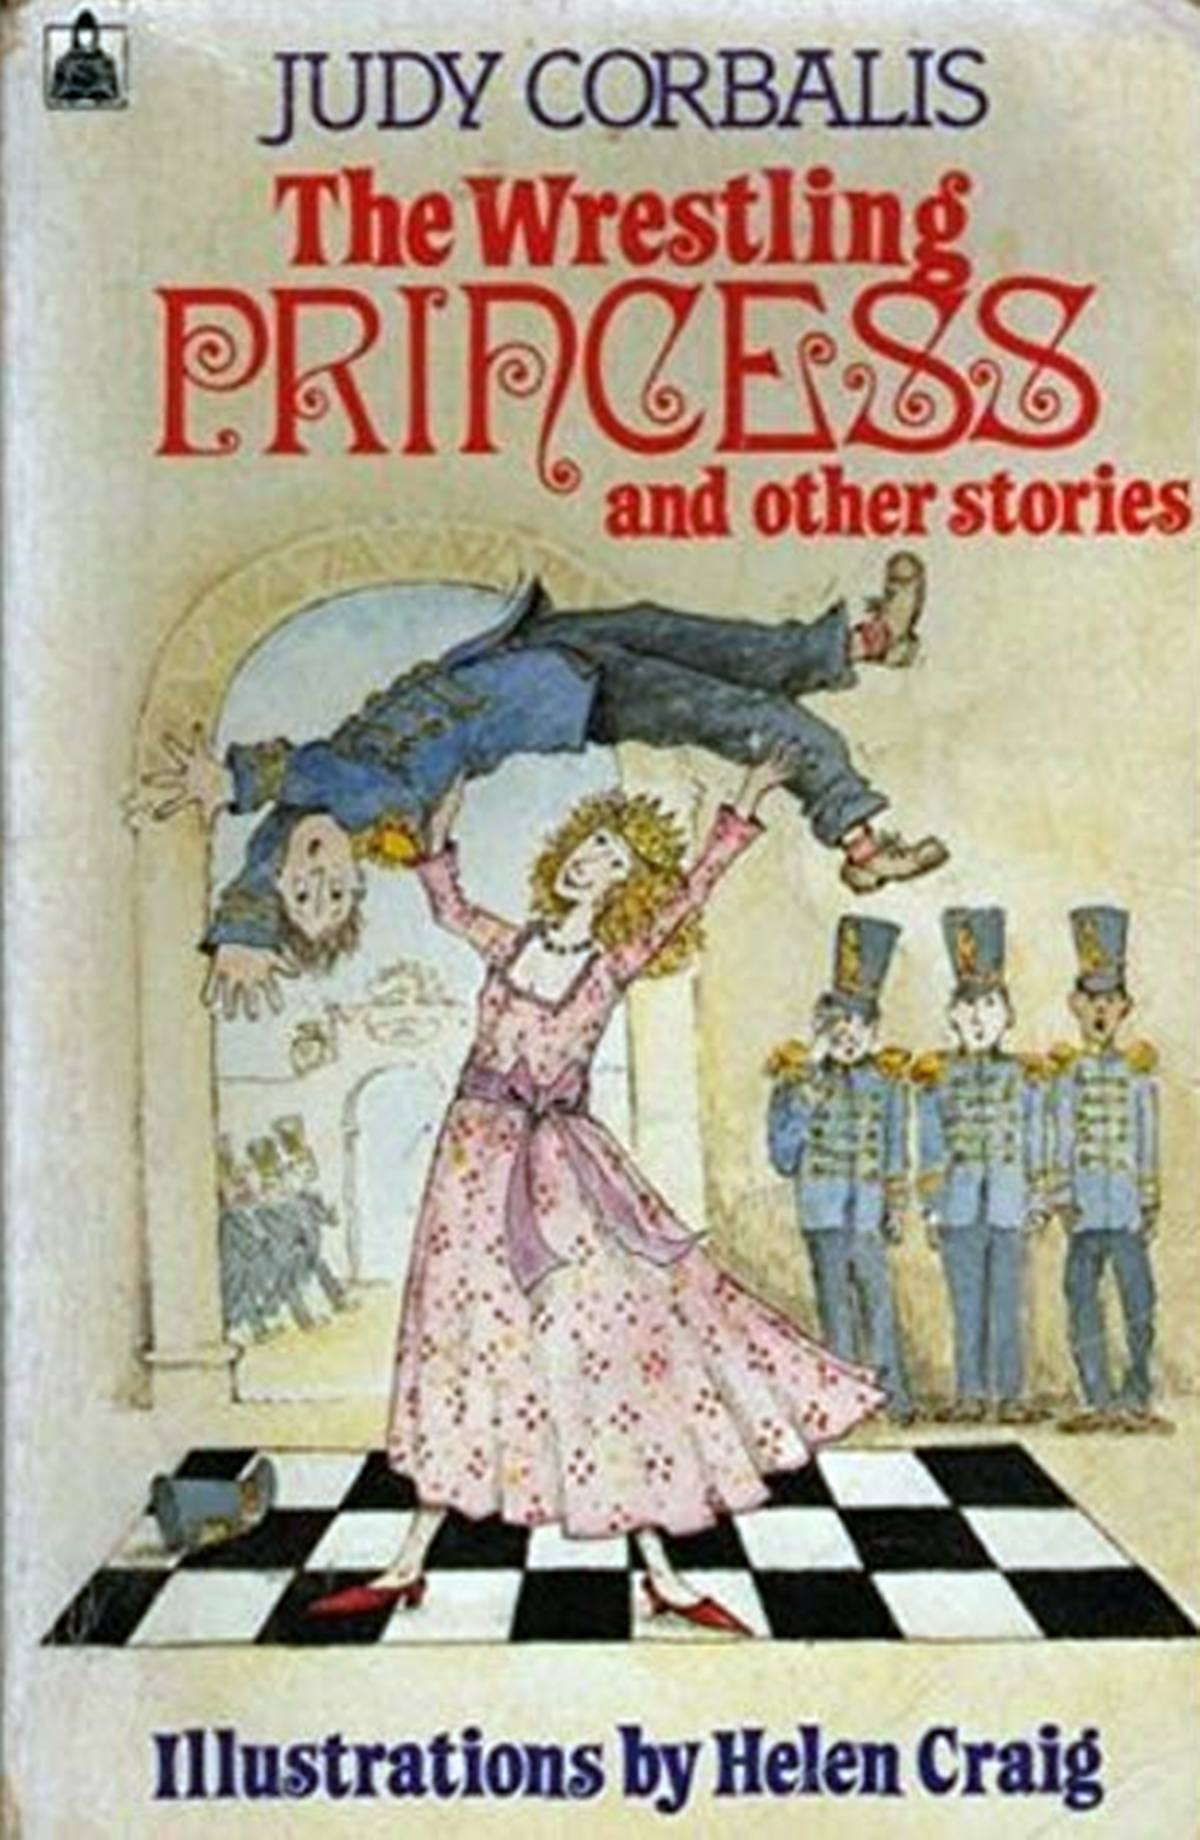 12 12 12 More Childhood Books You've Probably Forgotten About